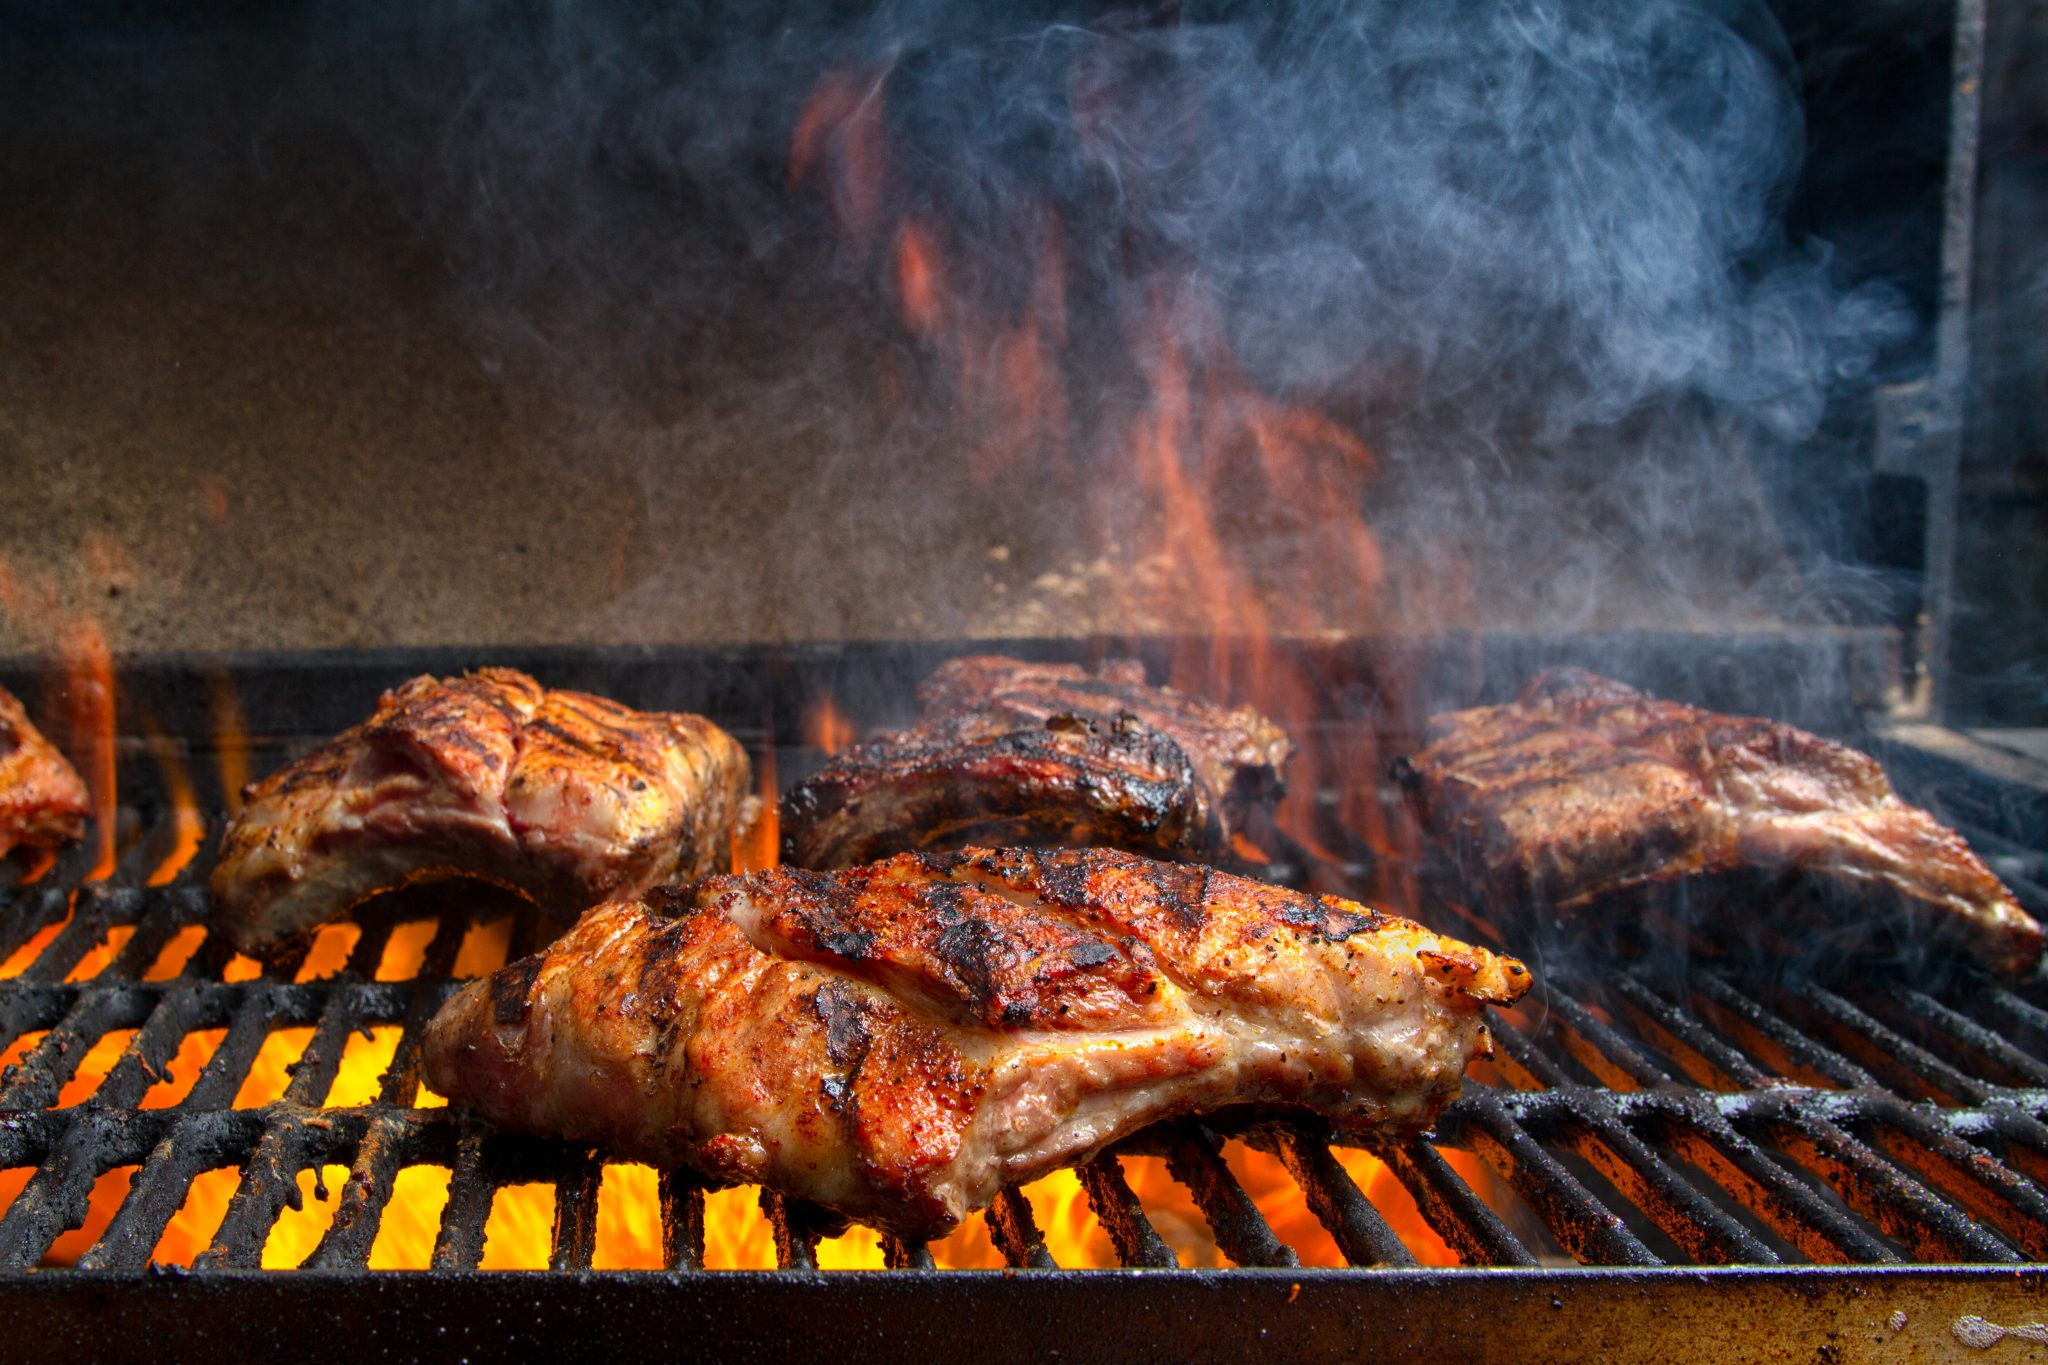 Grouping of Baby Back Ribs on a barbecue grill with flames leaping up to sear the meat sealing in the juices.  Ribs have nice grill marks and are seasoned with a dry rub and are almost ready to serve.